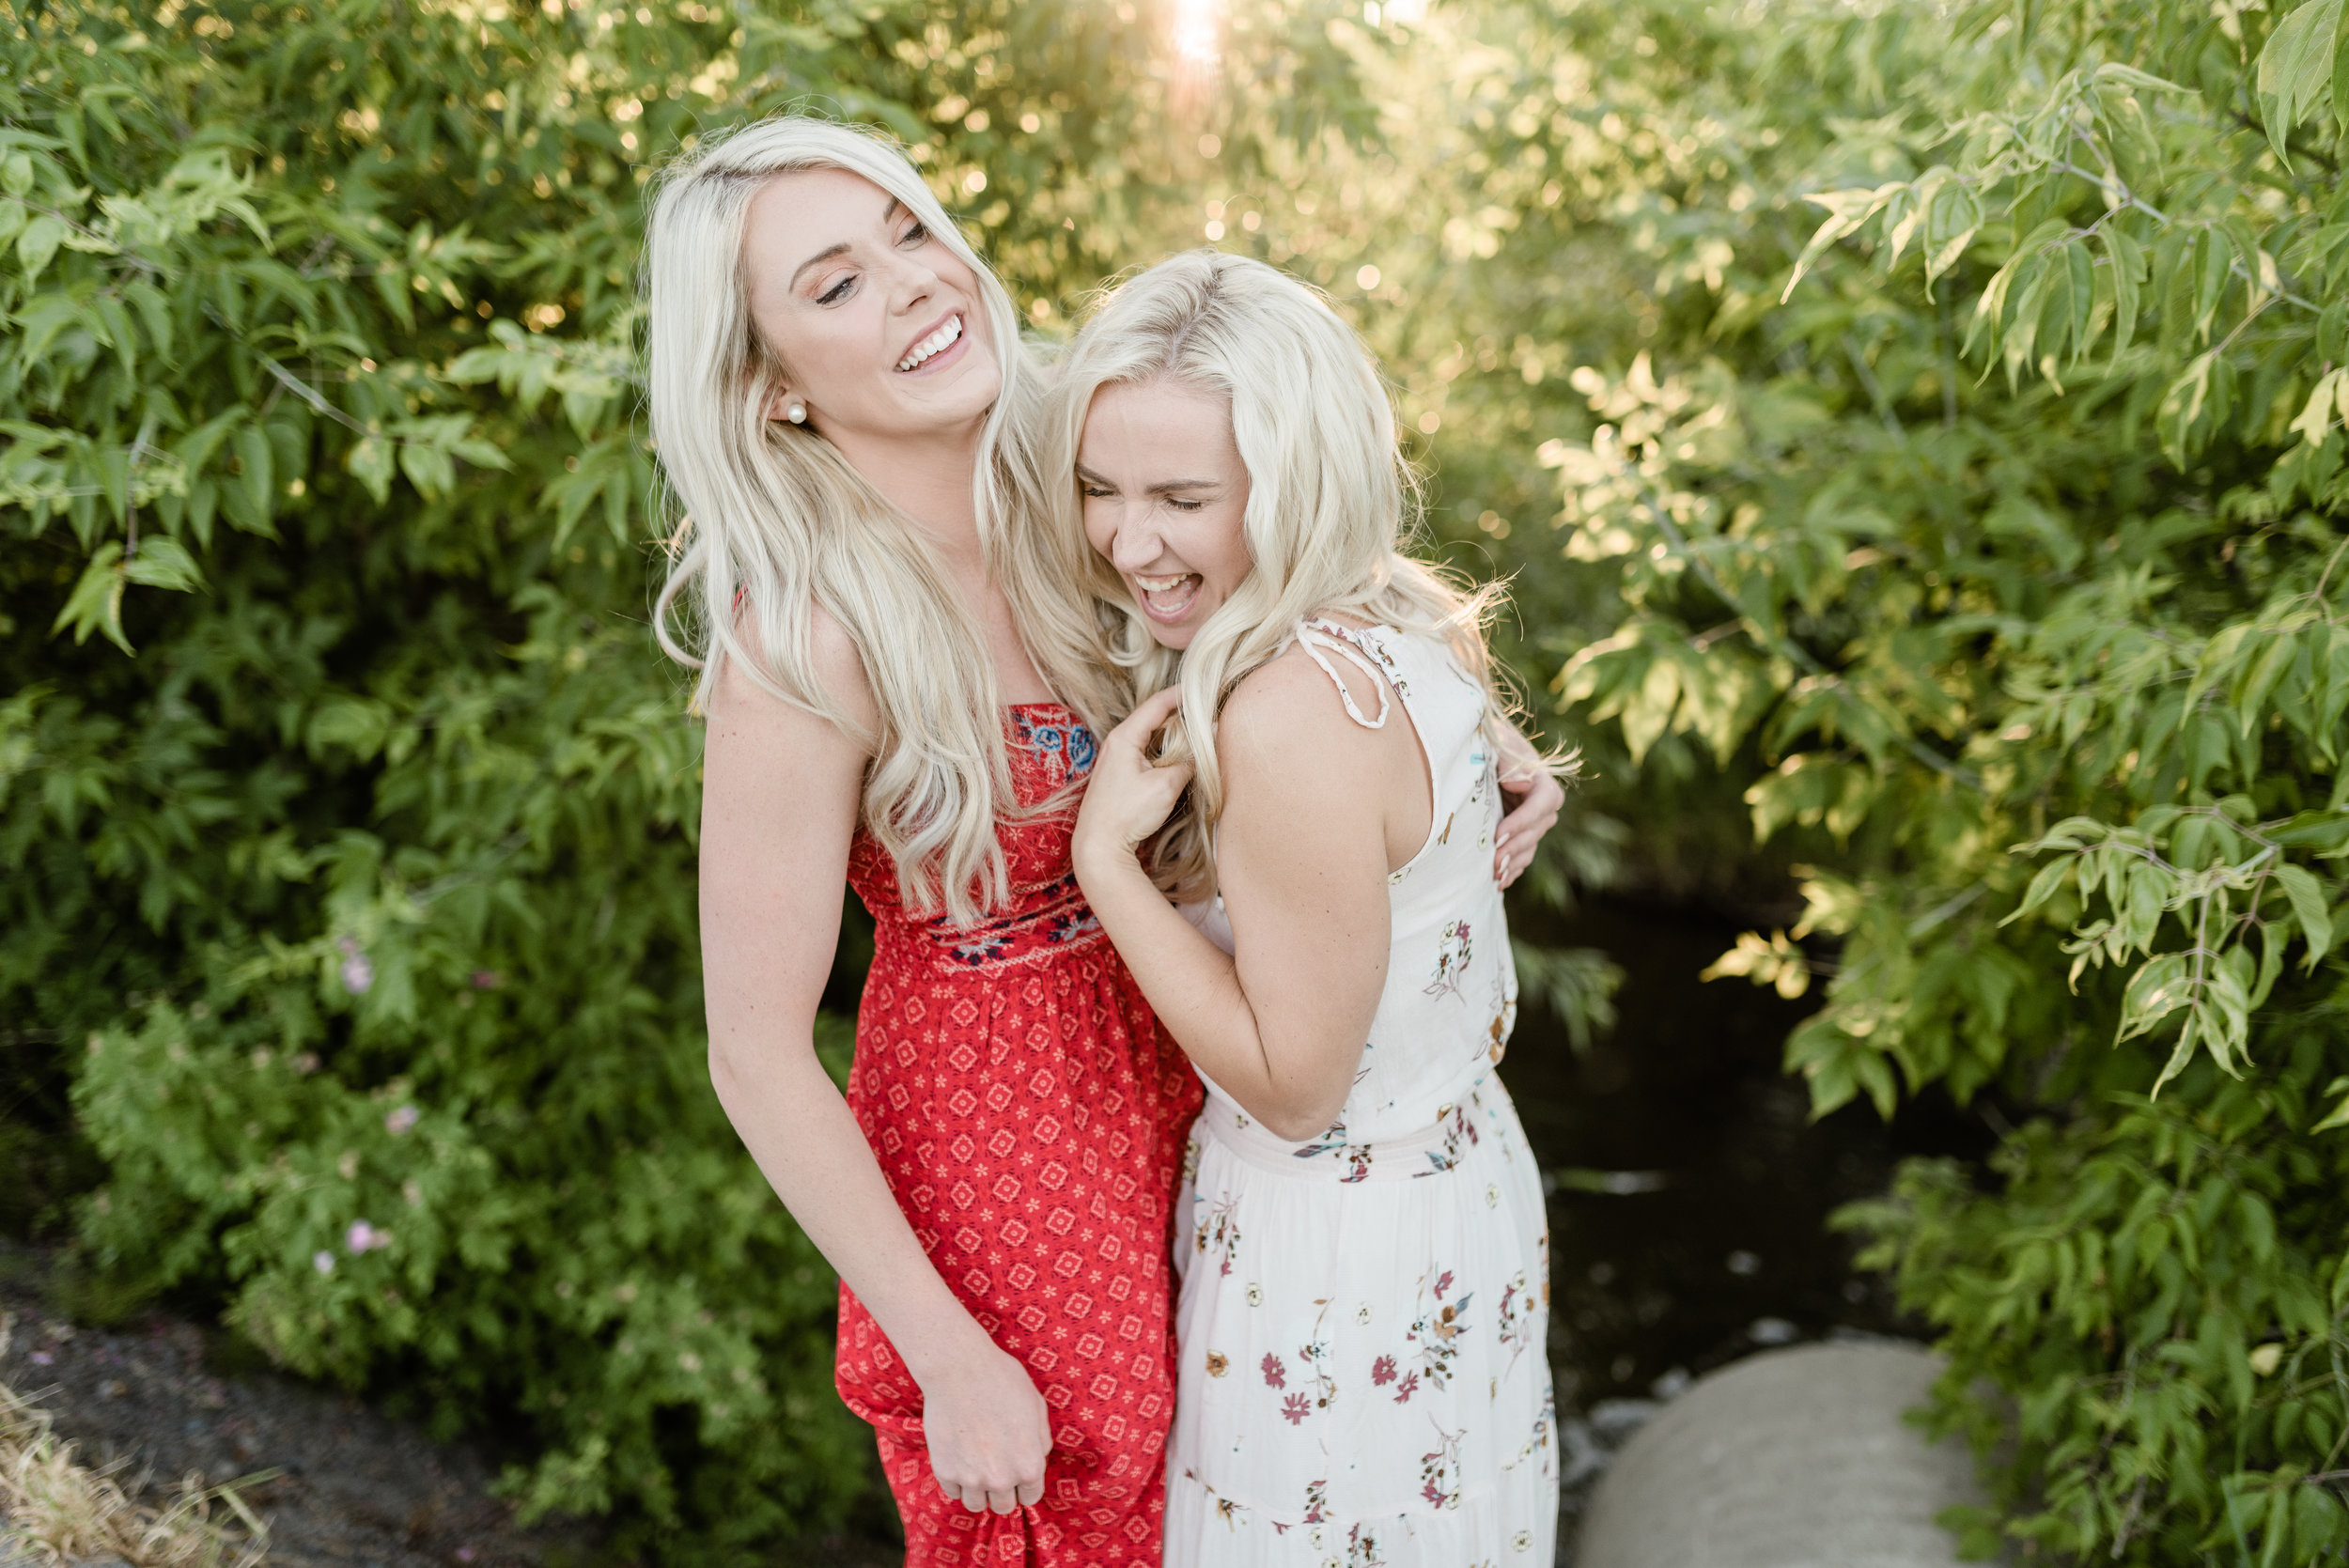 Laughter with close friends on a random weeknight is so necessary during our busy wedding season